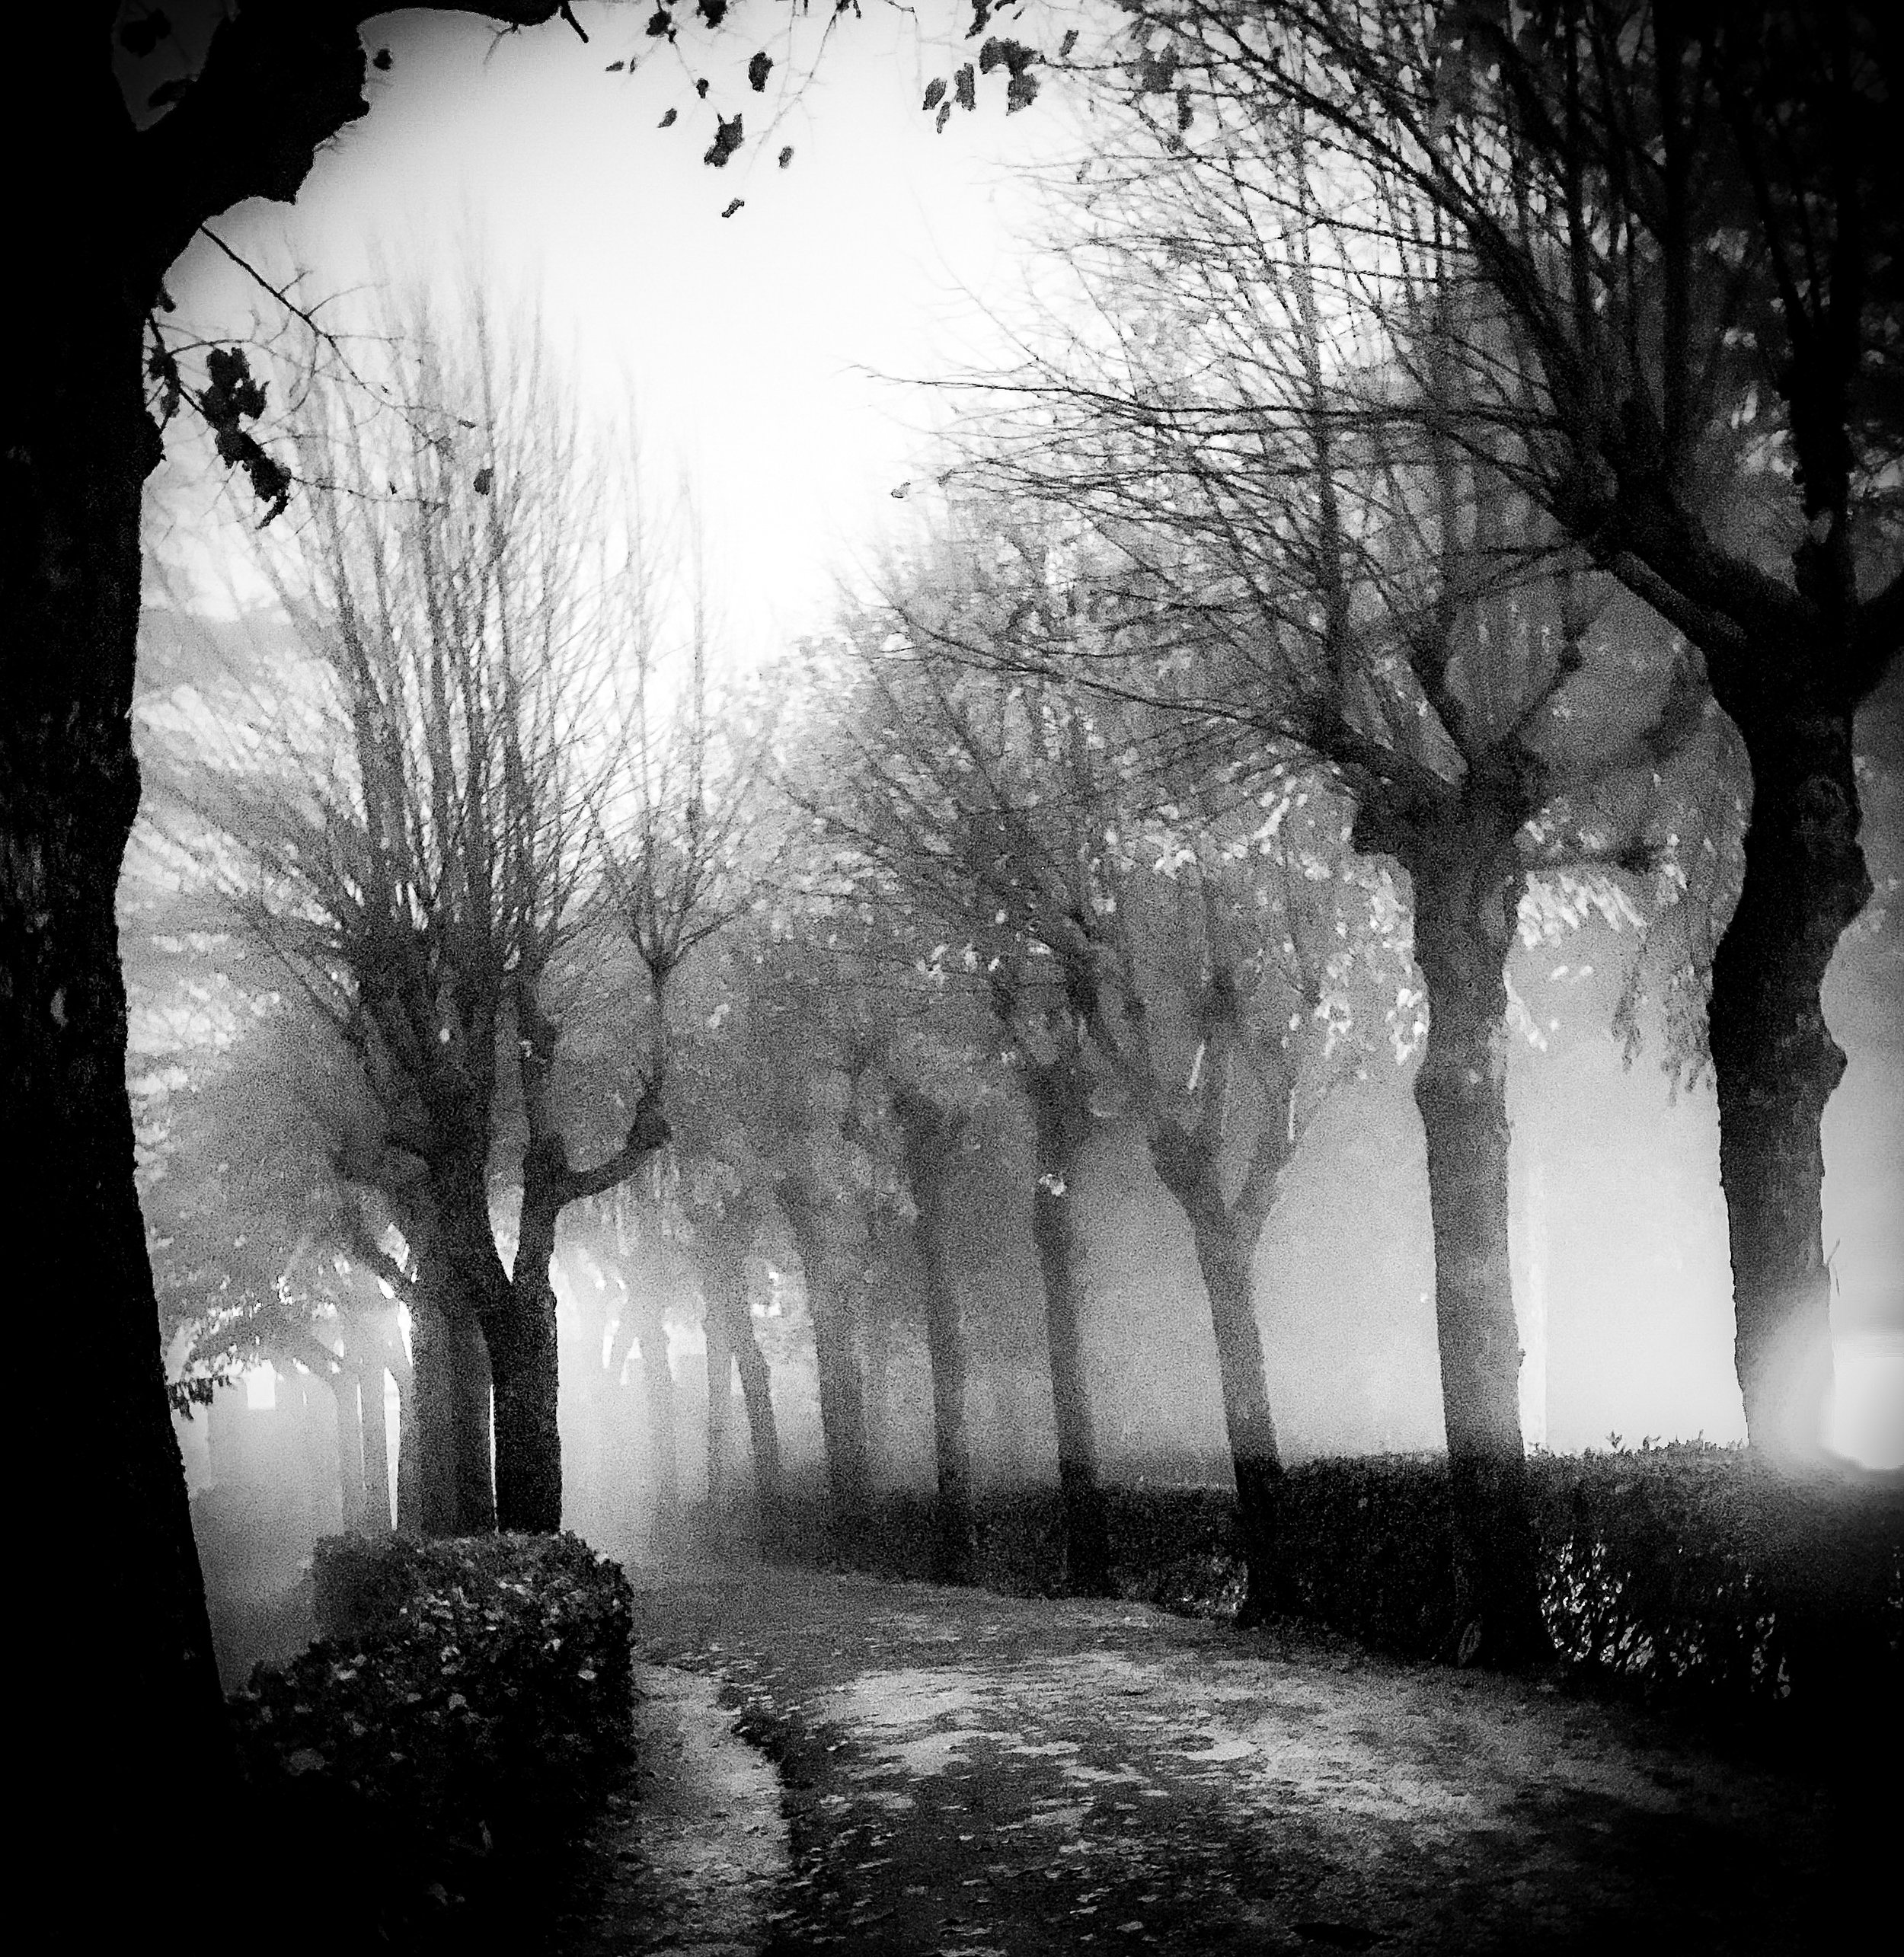 Fog Trees.  A man is a tree / silhouette   of a bare tree / the sun cries shadows   over  / the furrows the crows glean  I remember the earth   loves us a little while we are here.